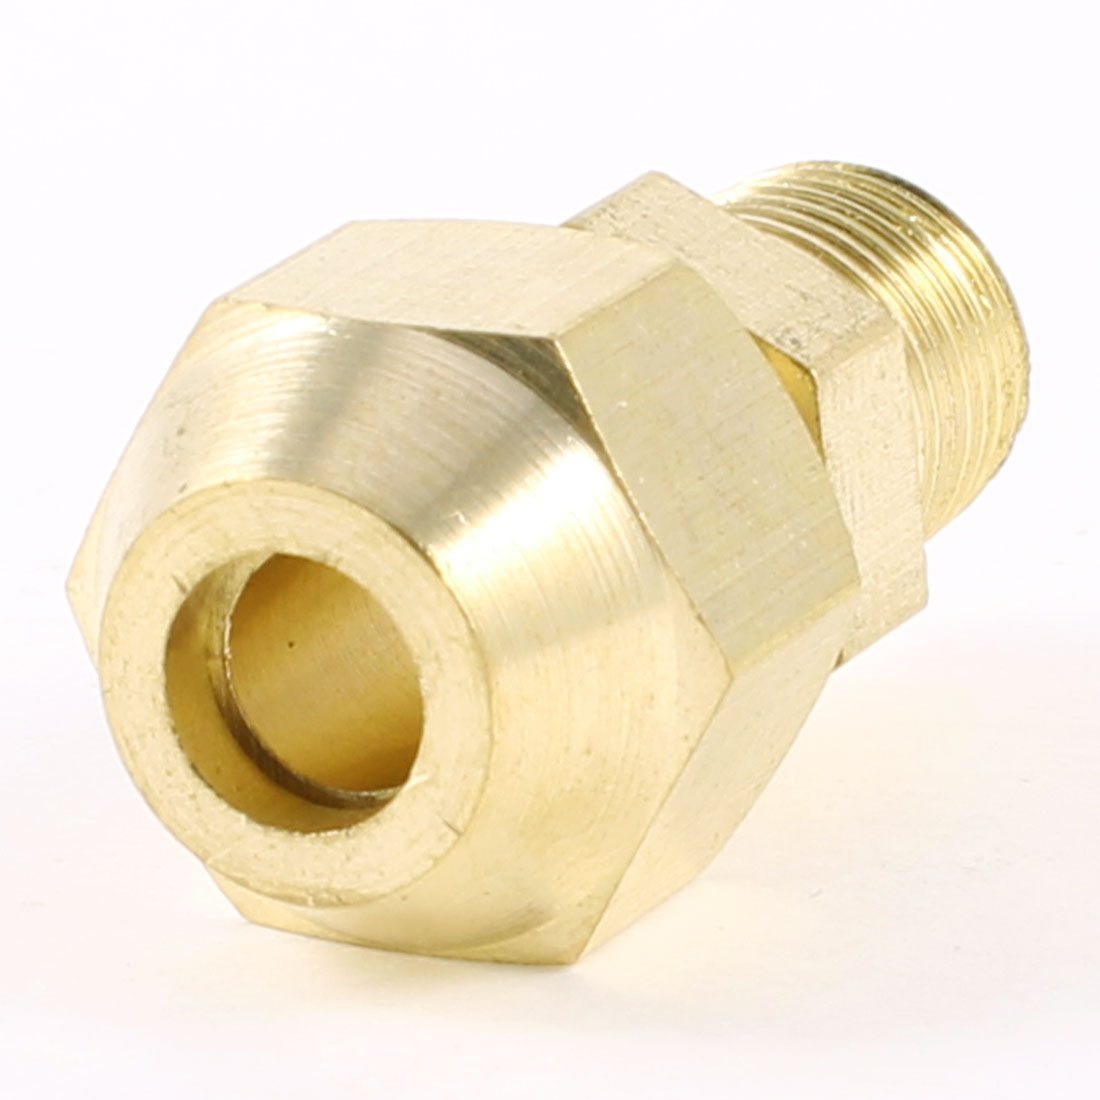 "6mm x 1/8"" PT Male Threaded Metal Adapter Hose Quick Joint Connector Gold Tone"